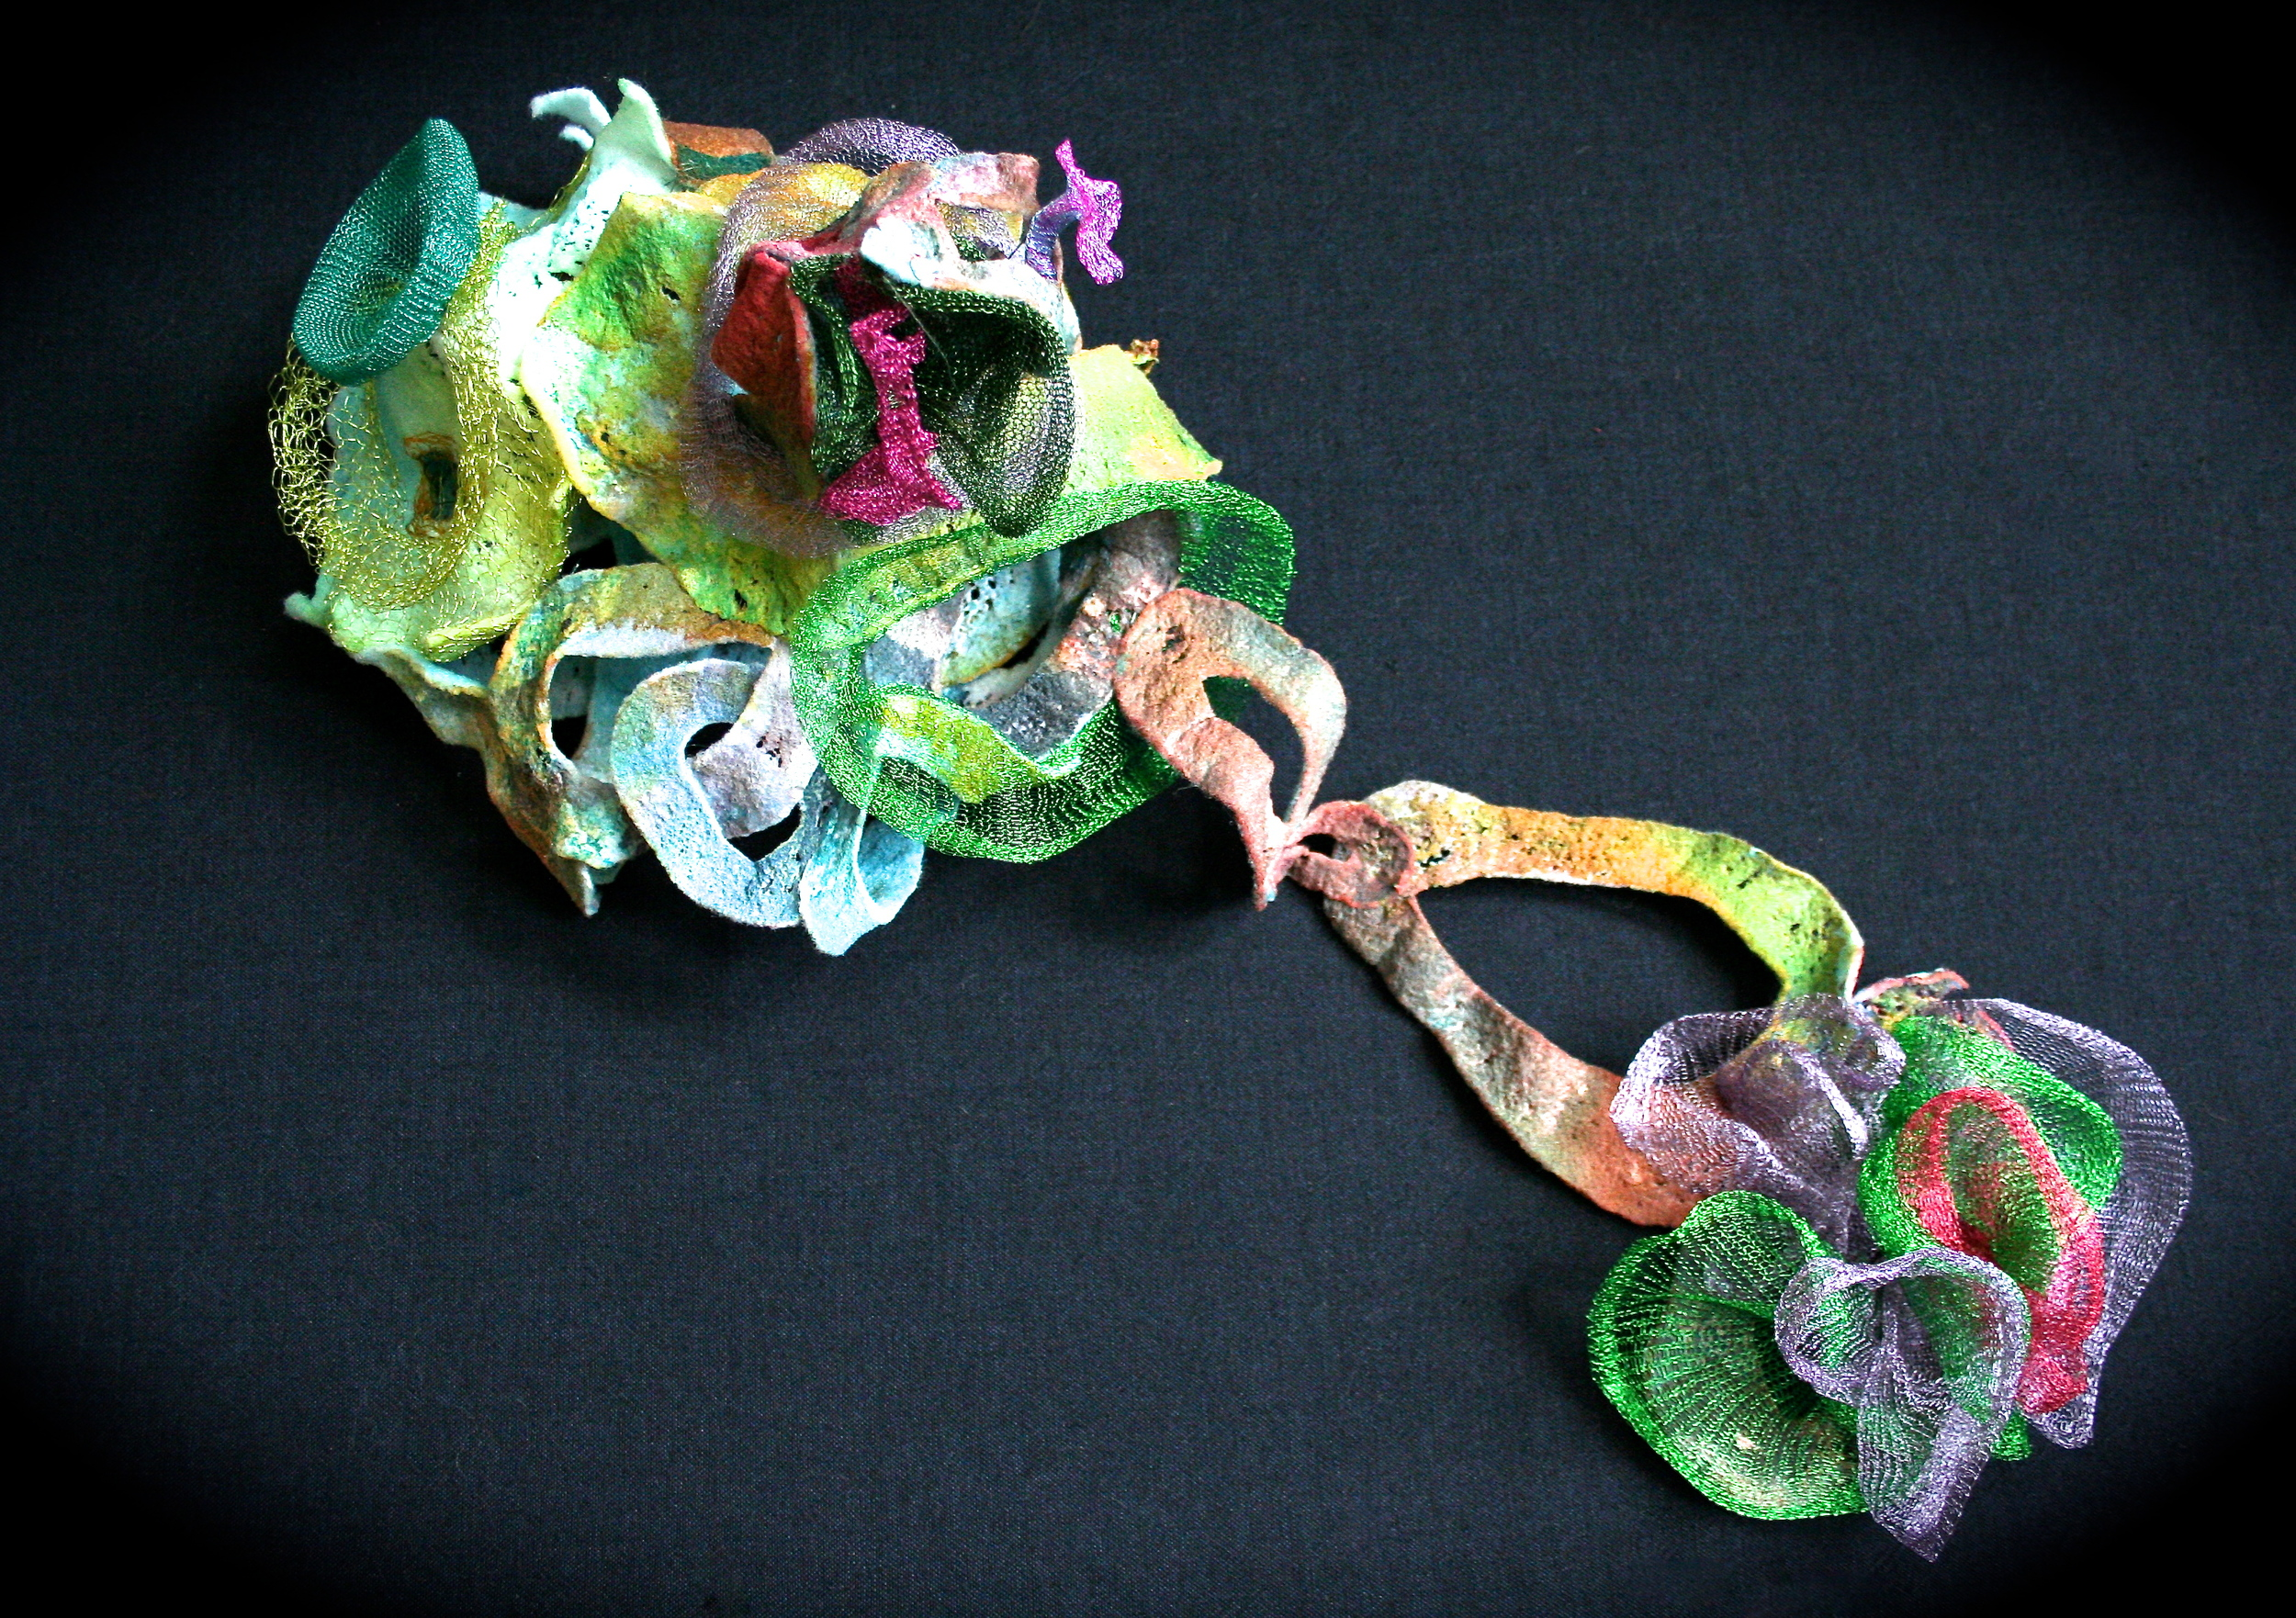 Dyed, melted Fosshape with manipulated wire knit